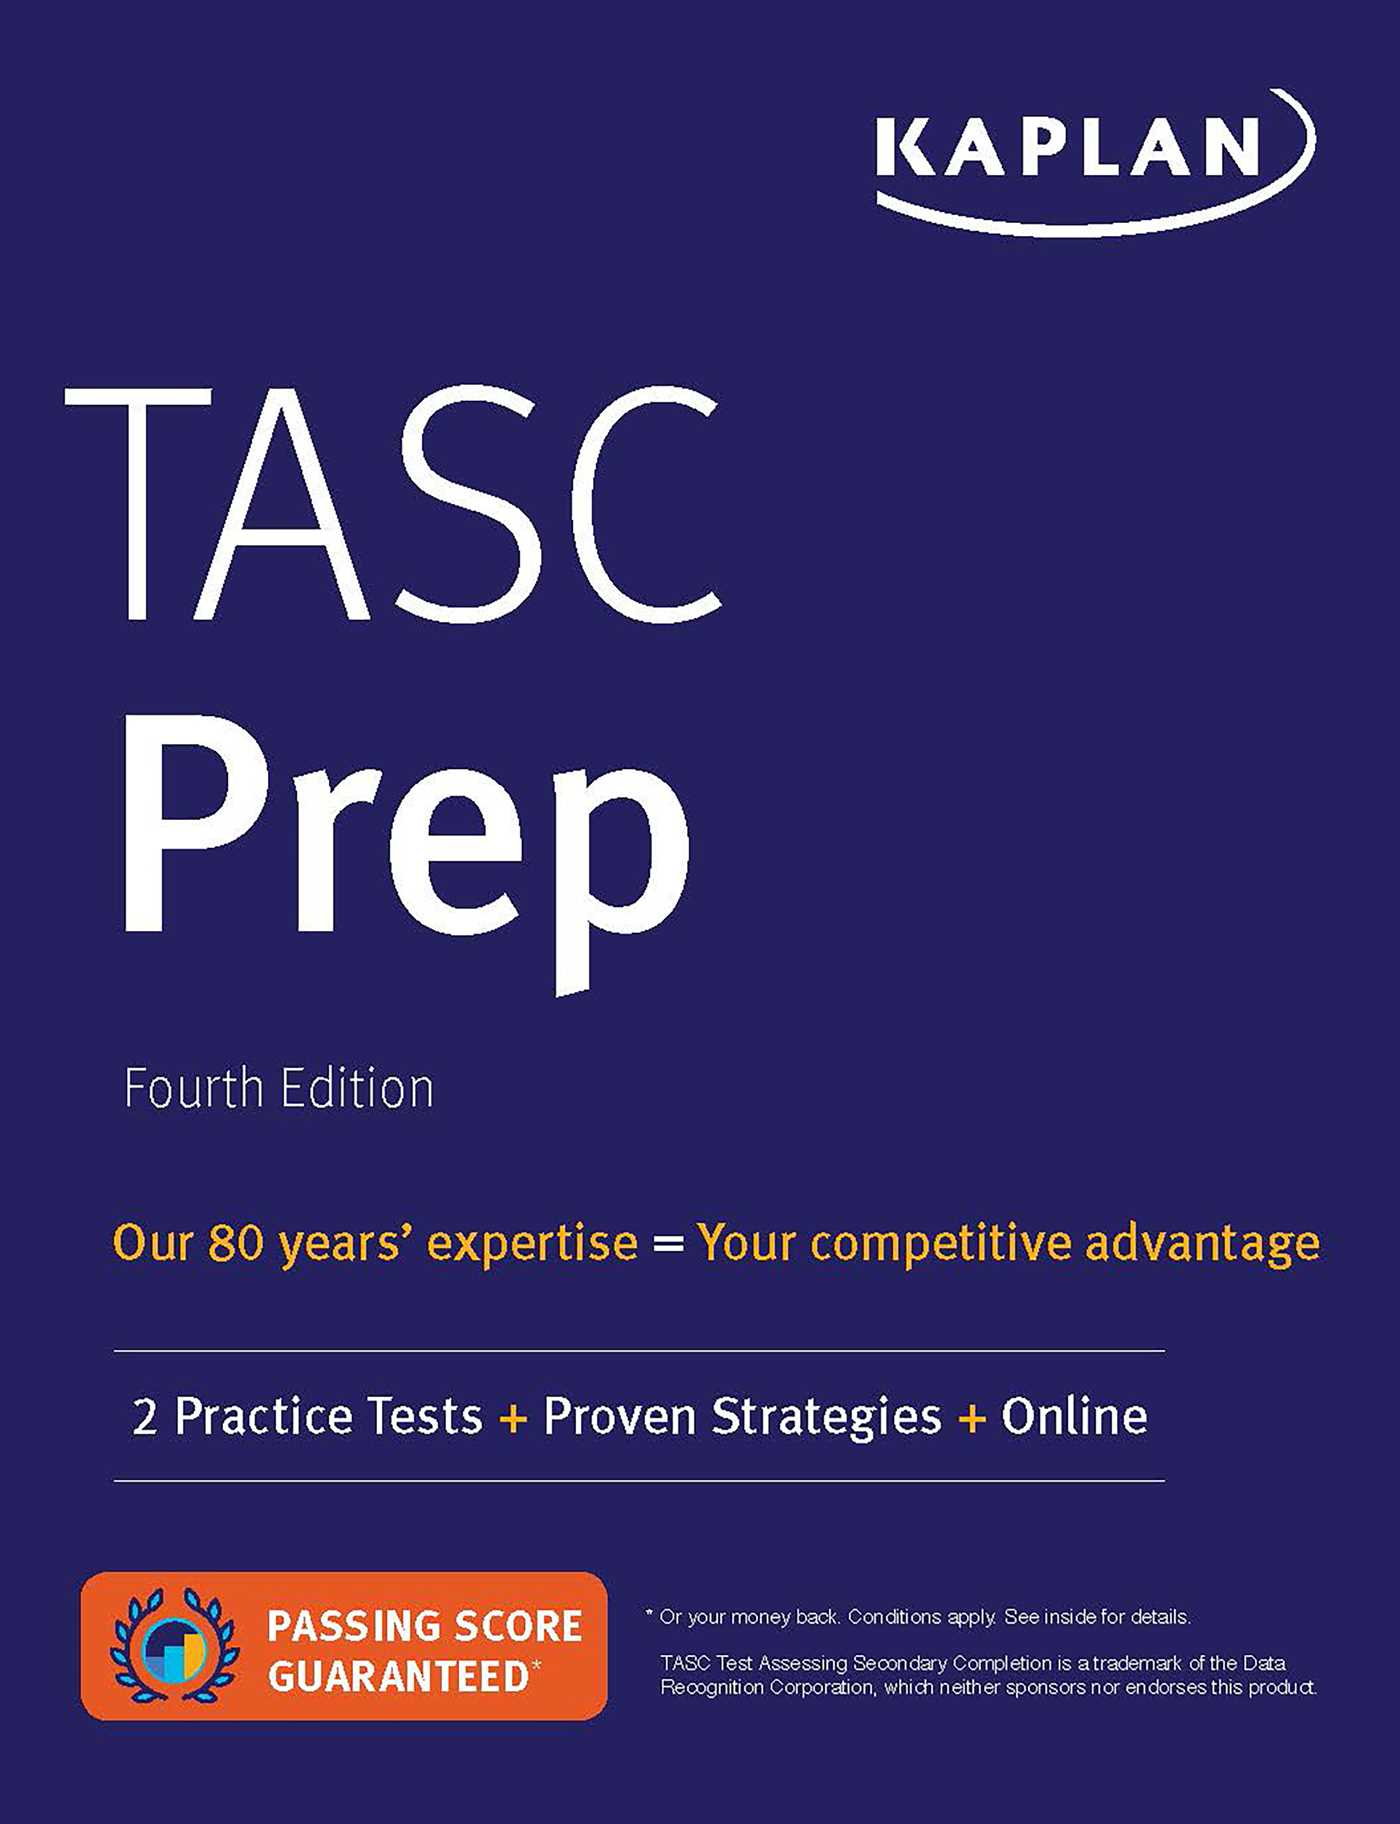 Test Taking Tips NEW Classroom Exam Preparation POSTER Customize for Free